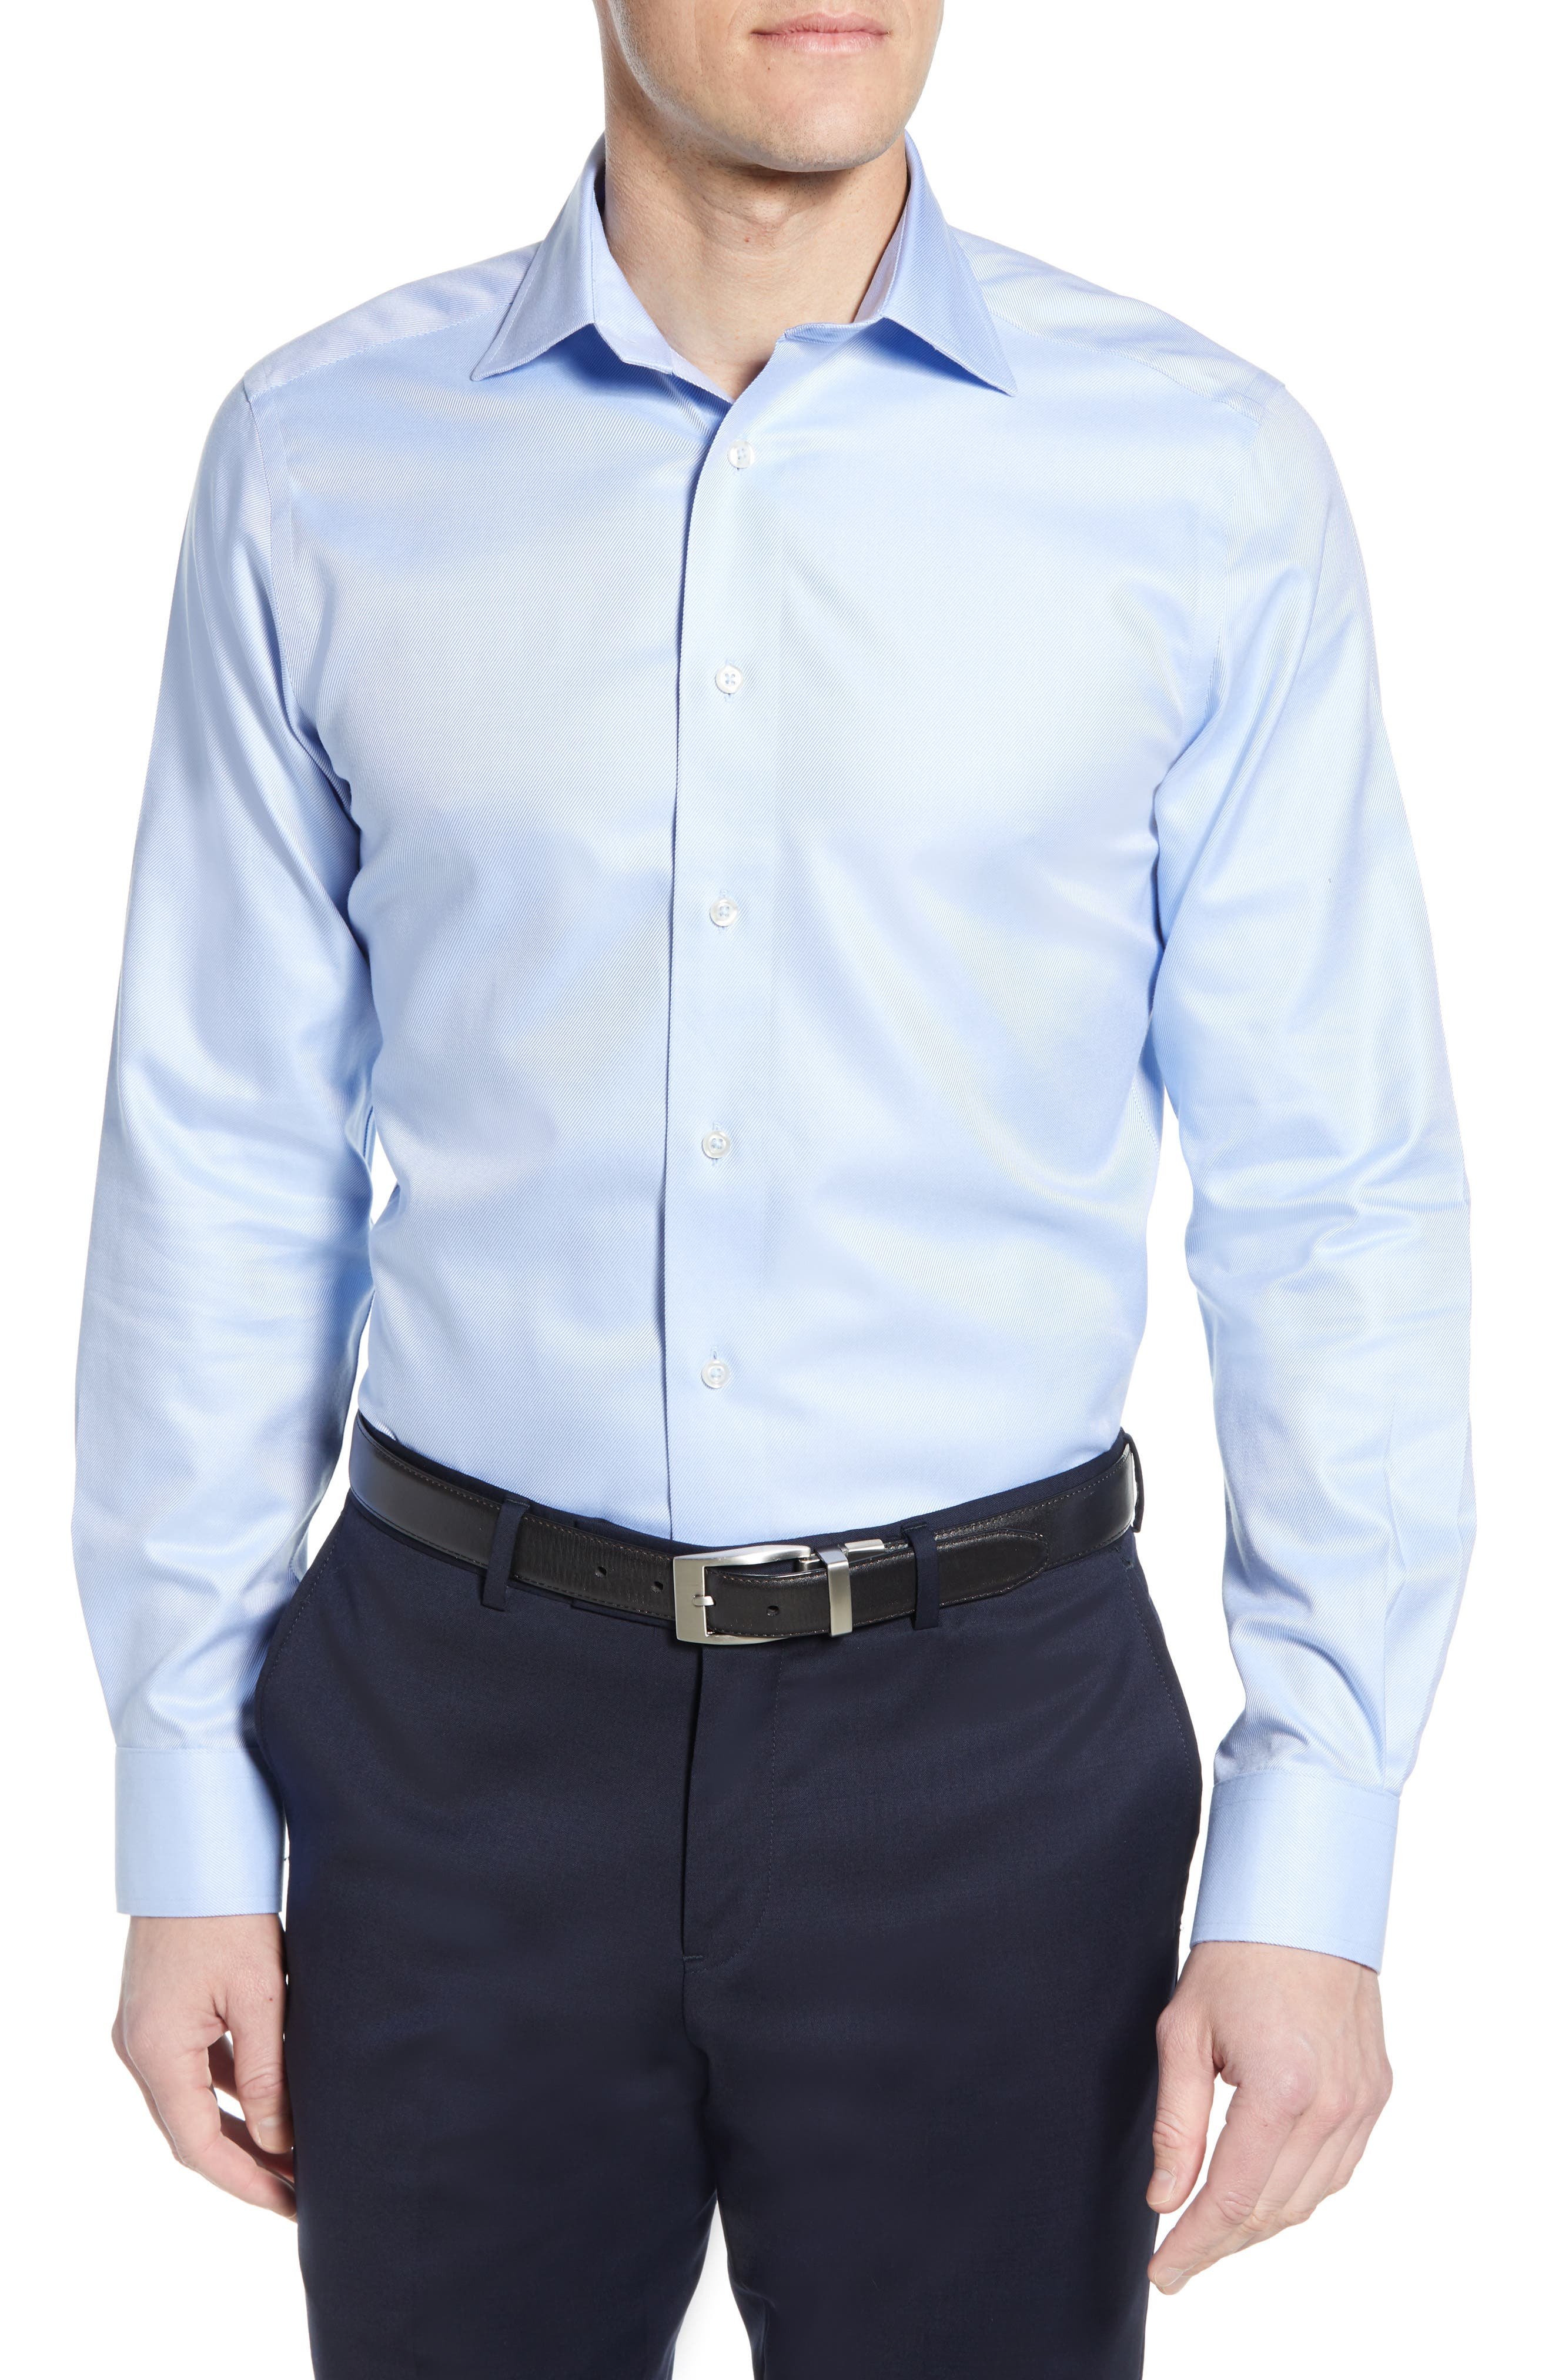 Luxury Non-Iron Trim Fit Solid Dress Shirt